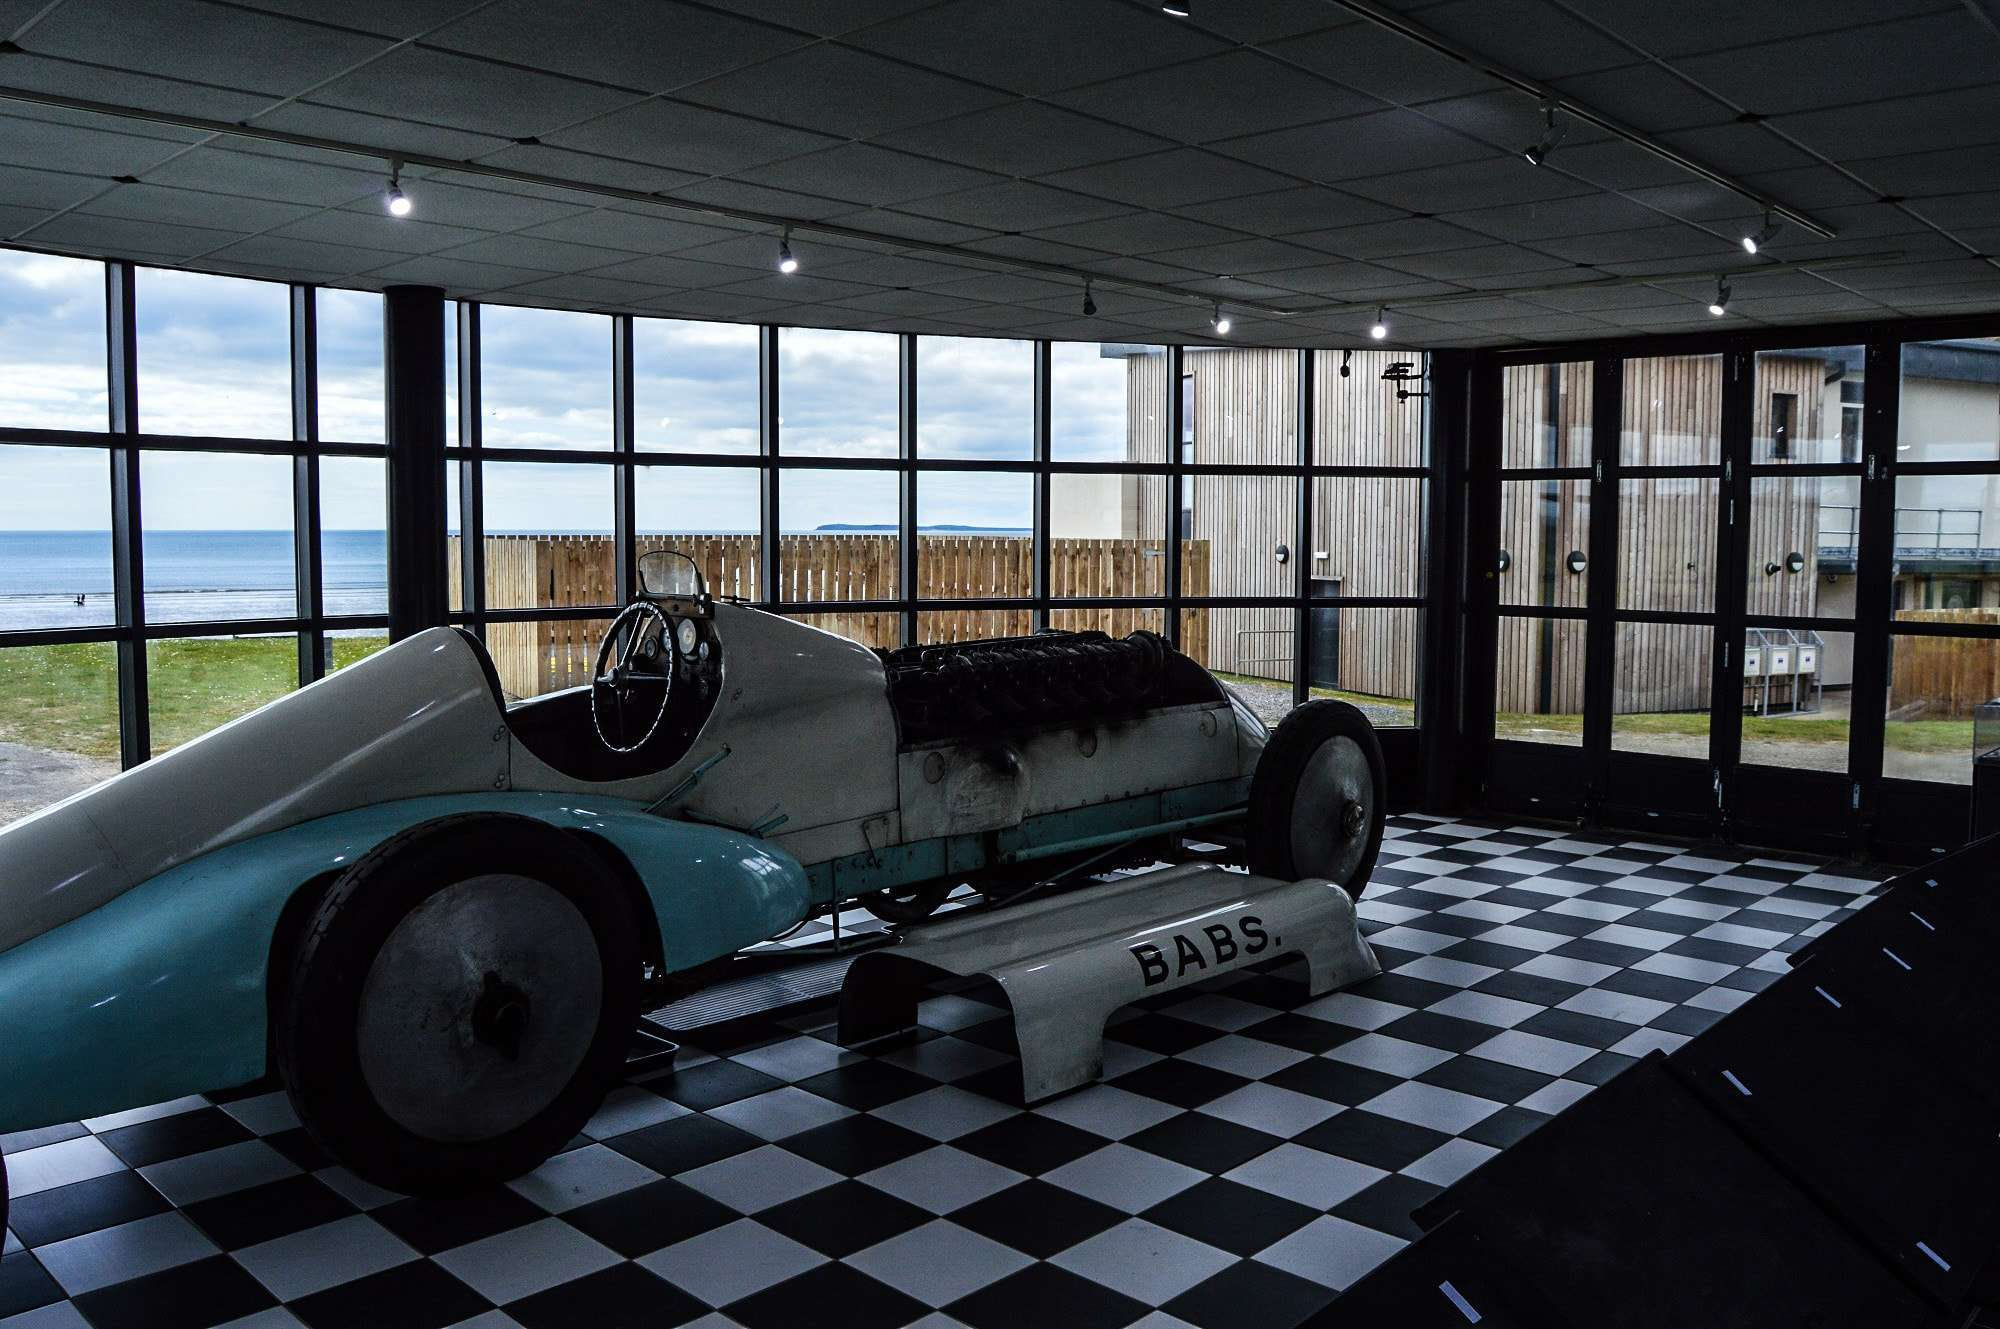 J.G Parry's Car at Museum of Speed, Pendine Sands